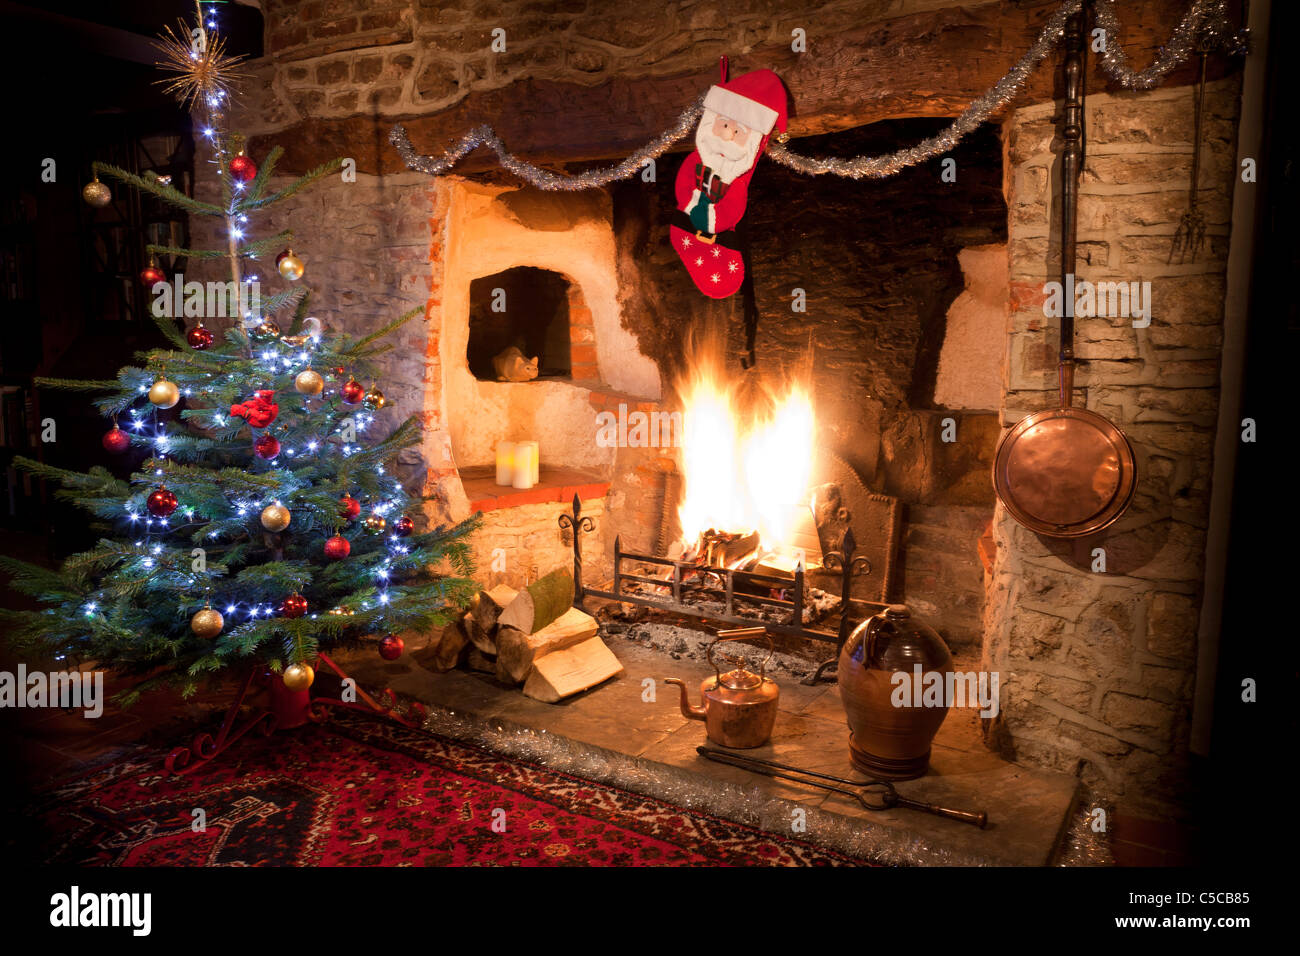 Inglenook Fireplace In Old House With High Blazing Log